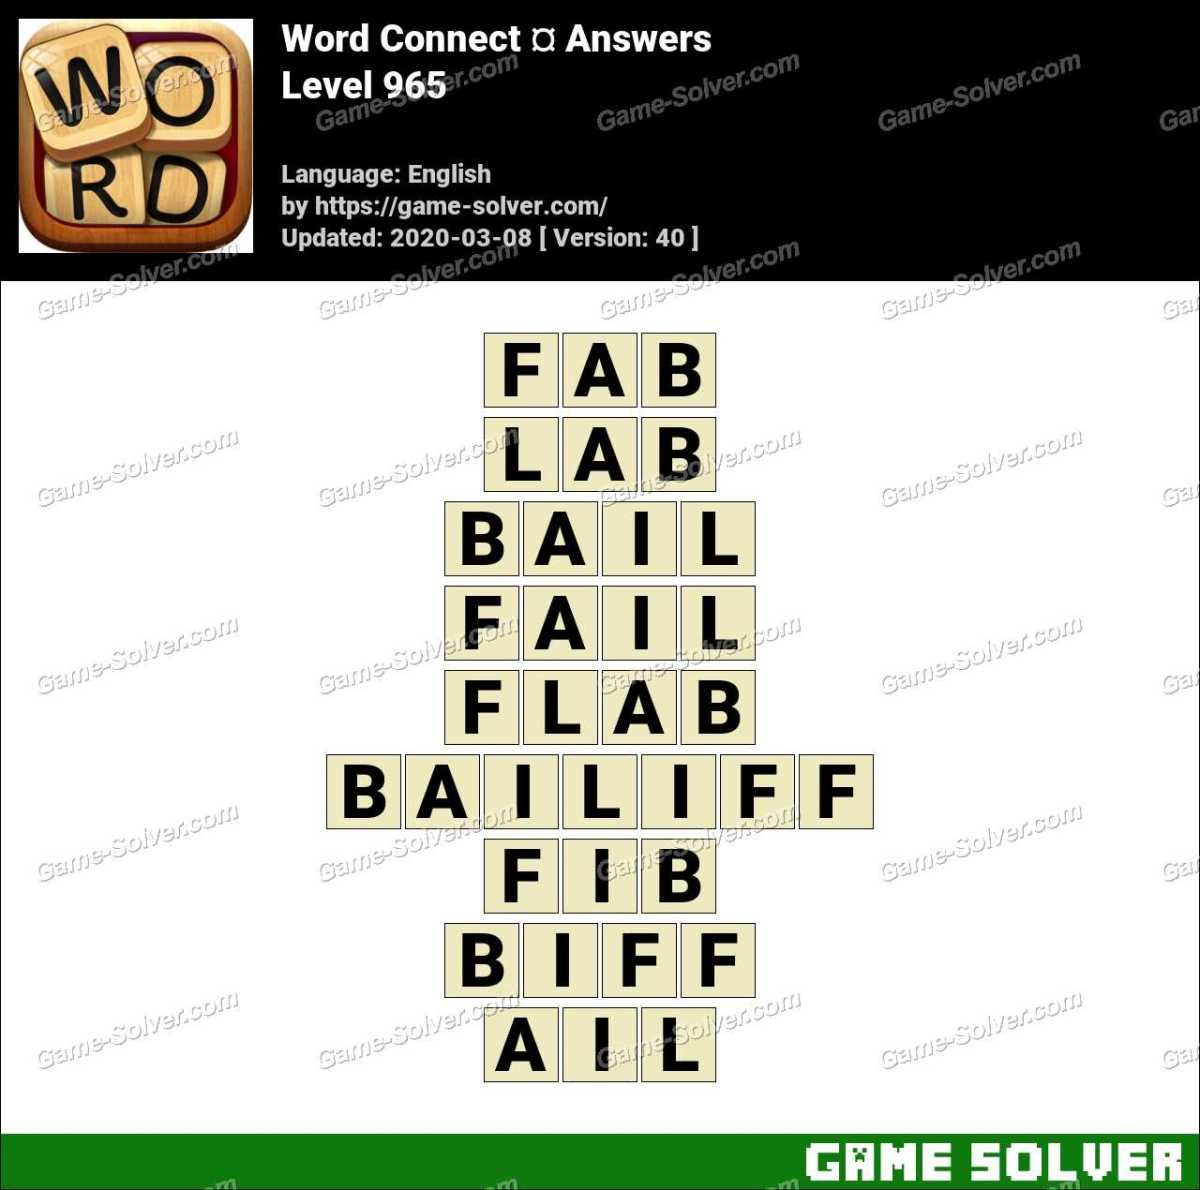 Word Connect Level 965 Answers